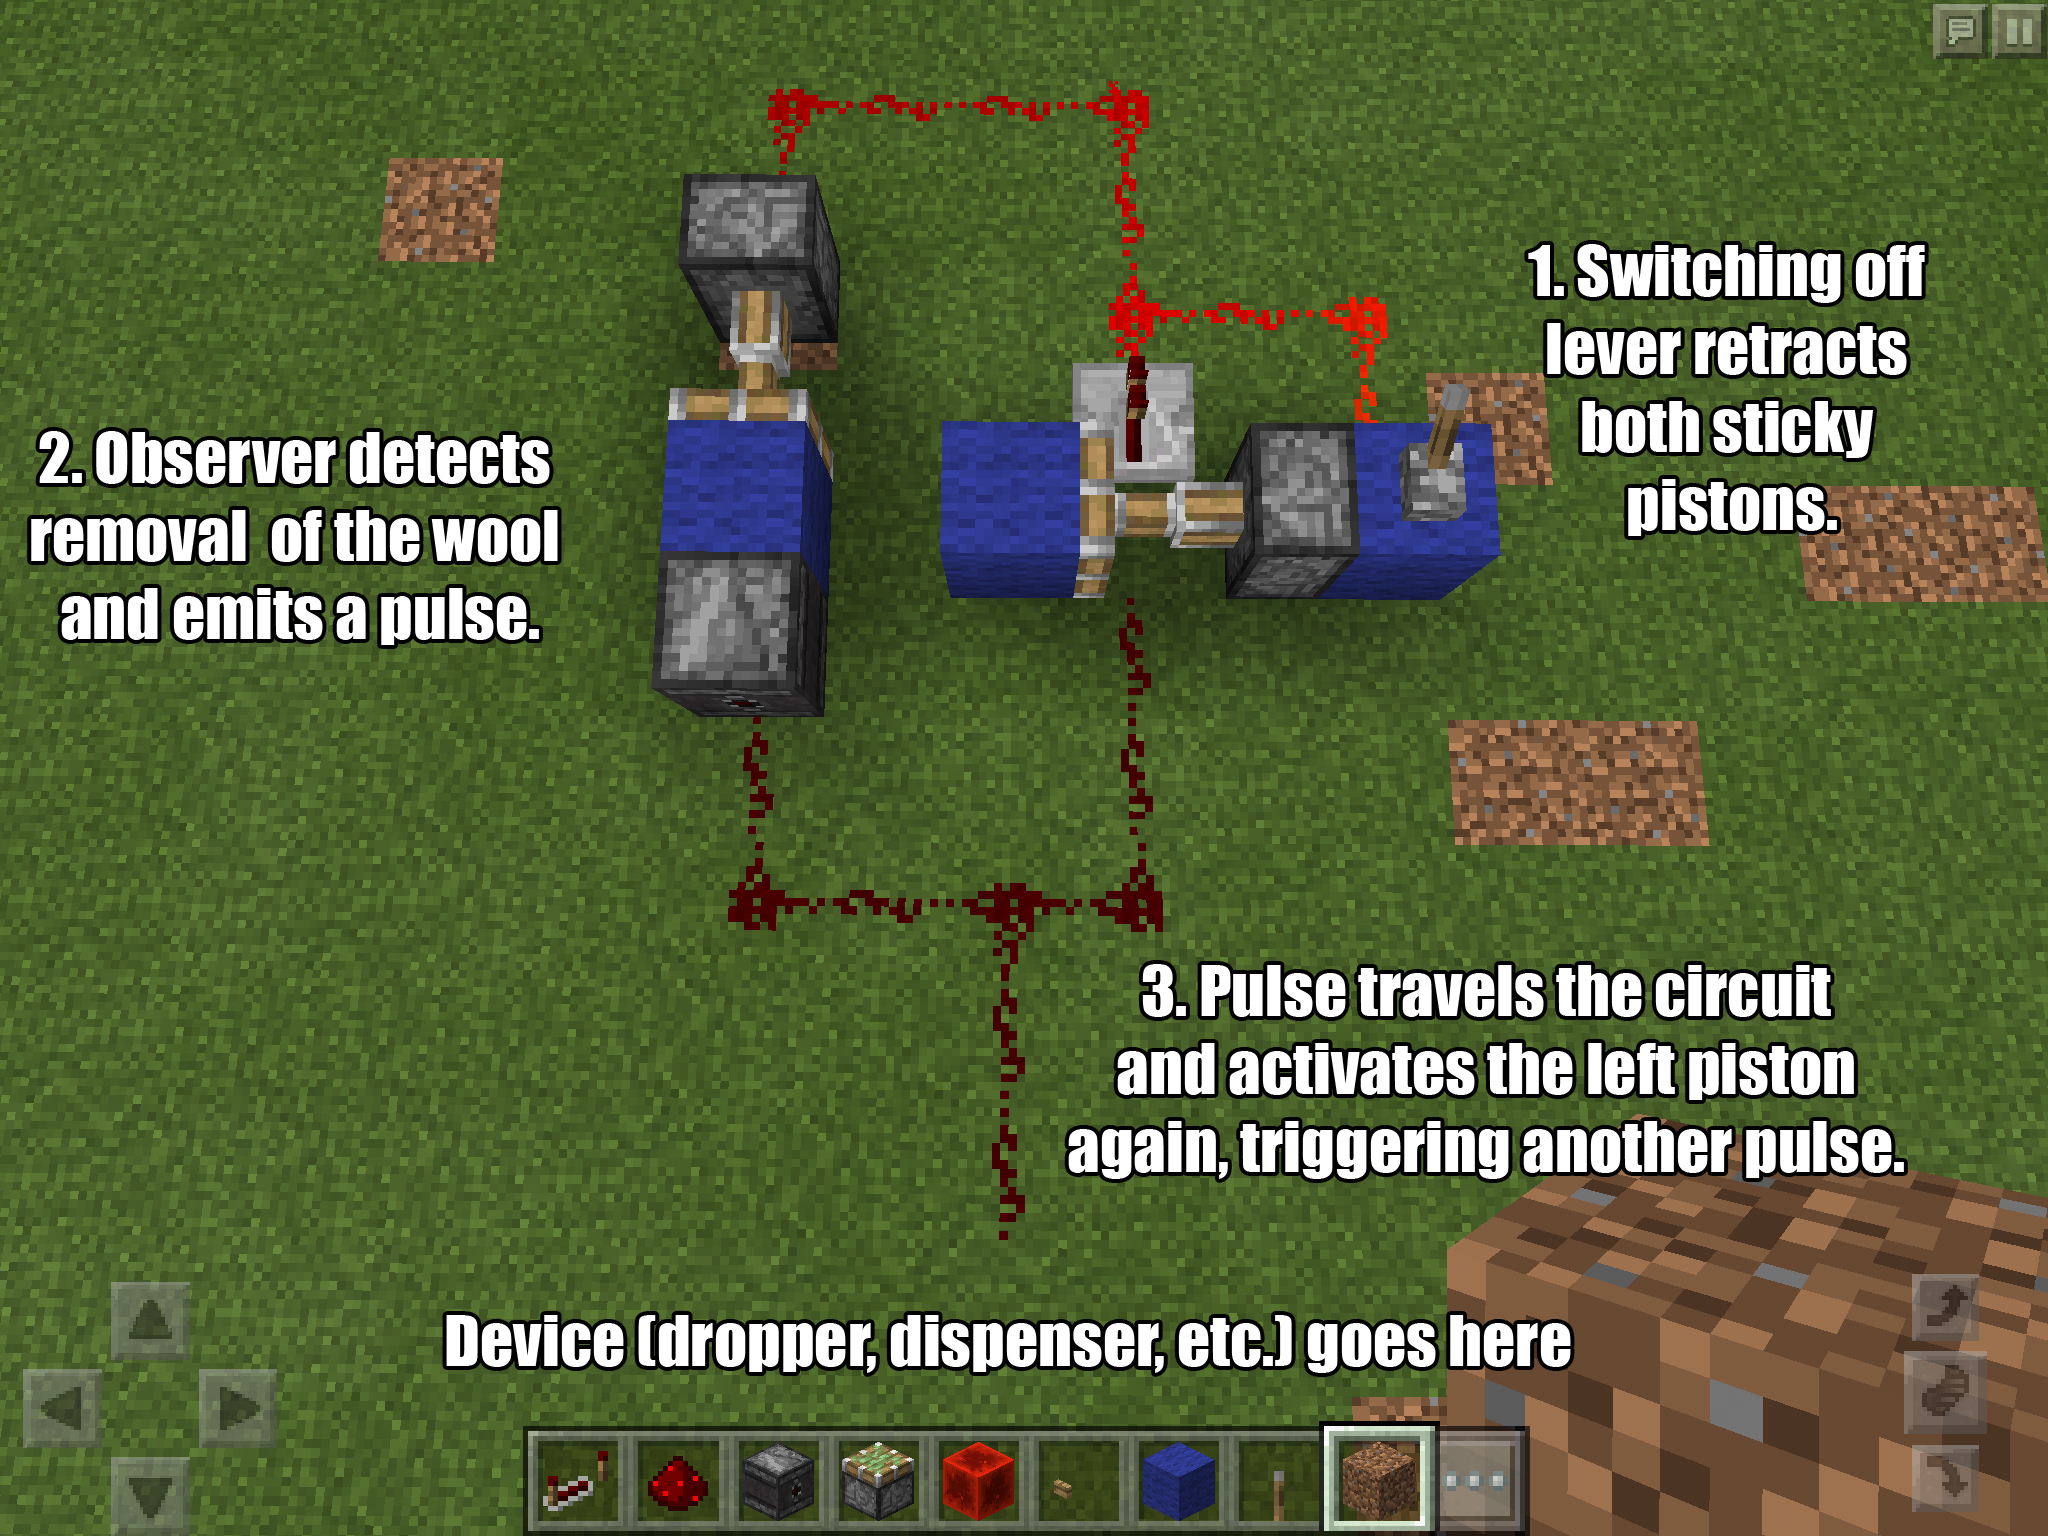 Lever-togglable redstone pulse clock powered by Observer block (no